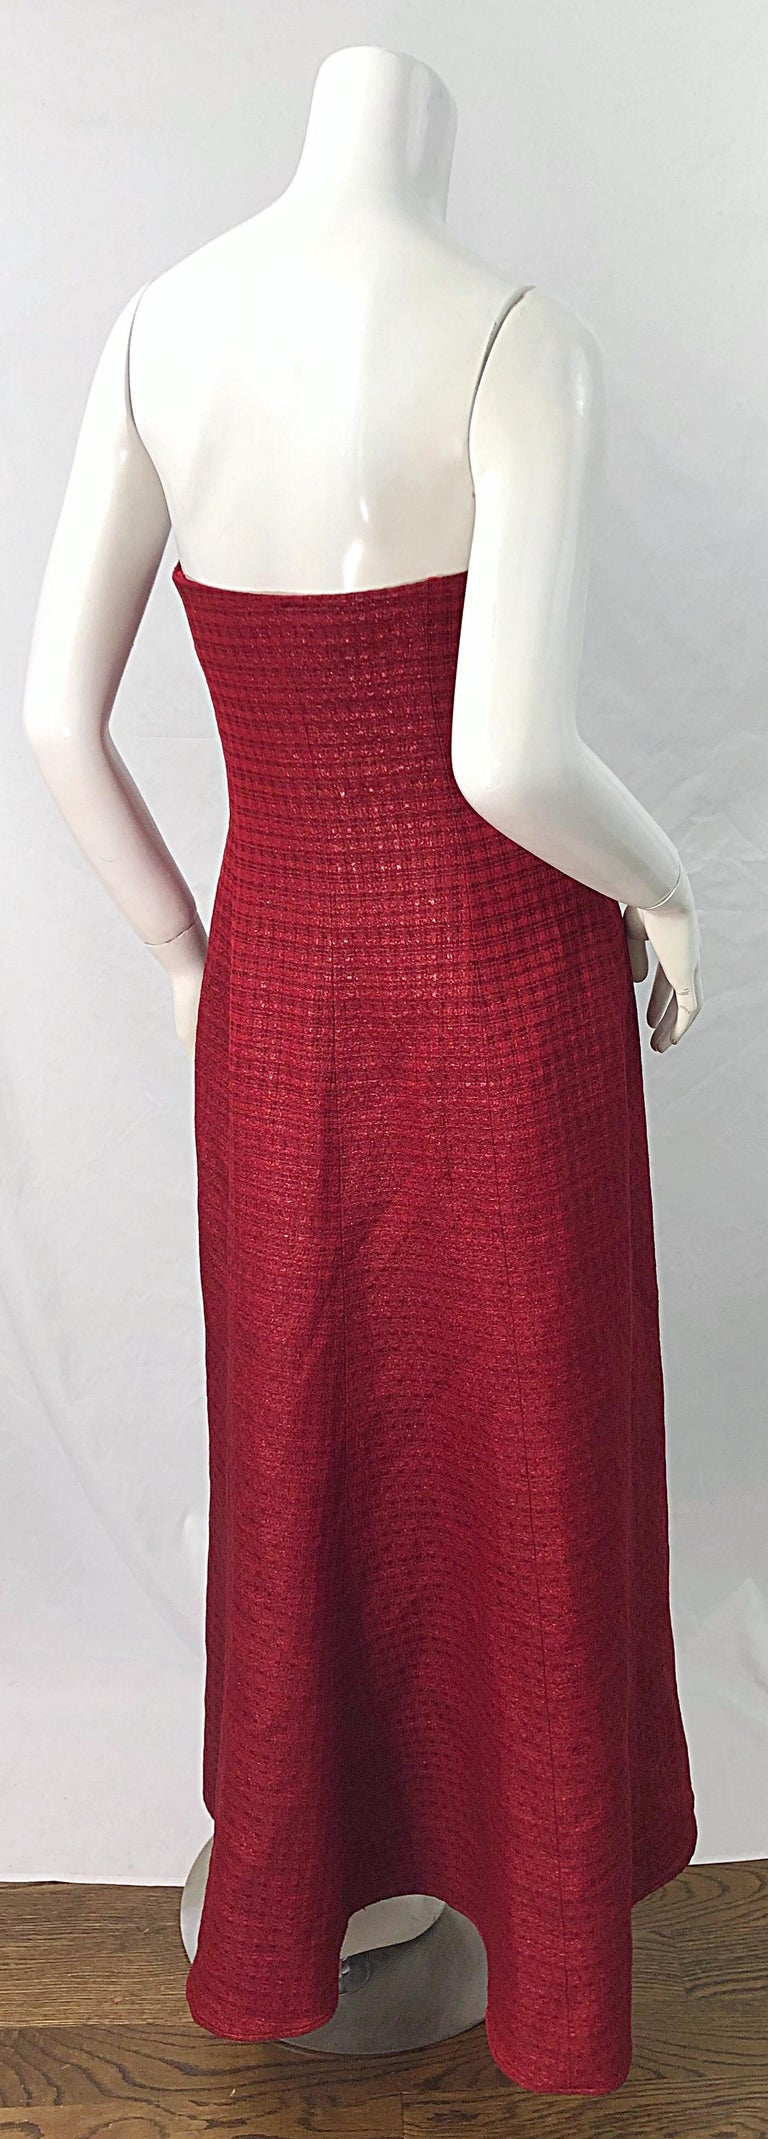 Women's 1990s Louis Feraud Cranberry Red Strapless Vintage 90s Silk + Wool Gown Dress For Sale